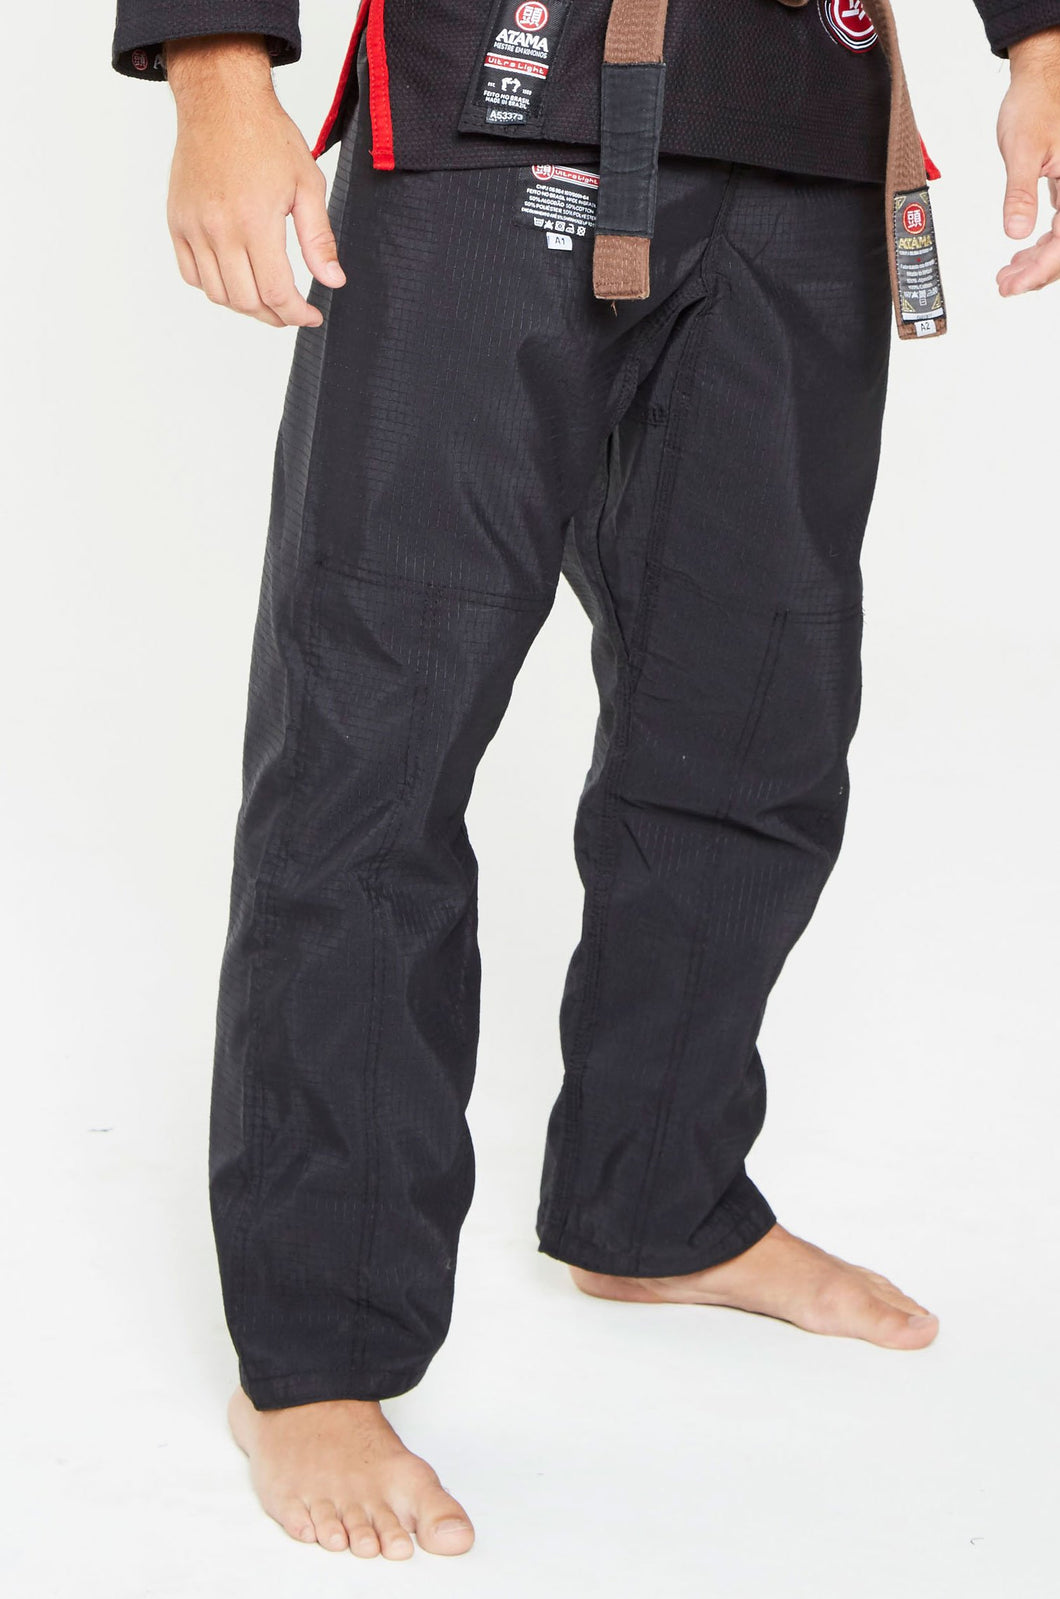 Pantalon JJB noir Ultra light - Atama - GATAME